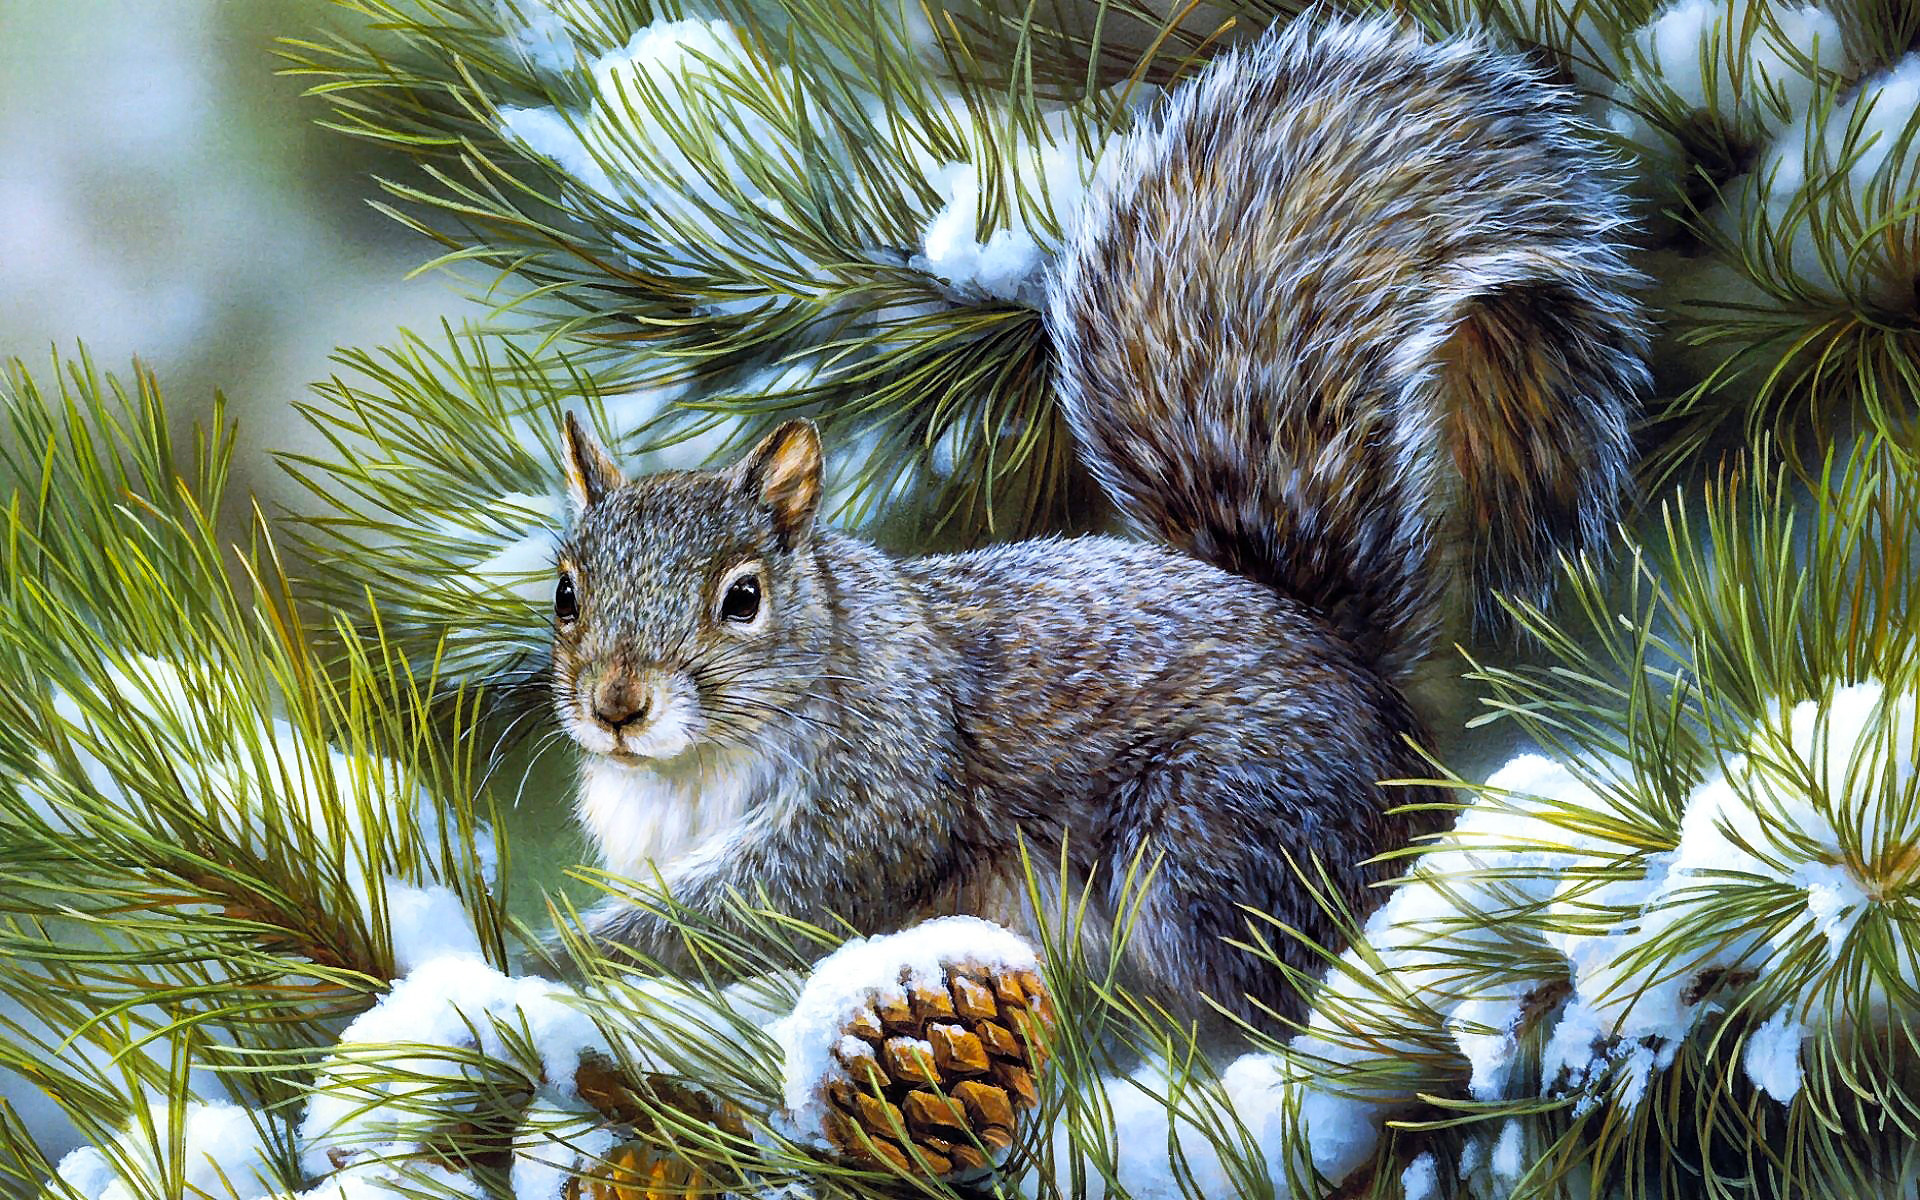 Squirrels animals rodents art artistic nature wildlife winter snow 1920x1200